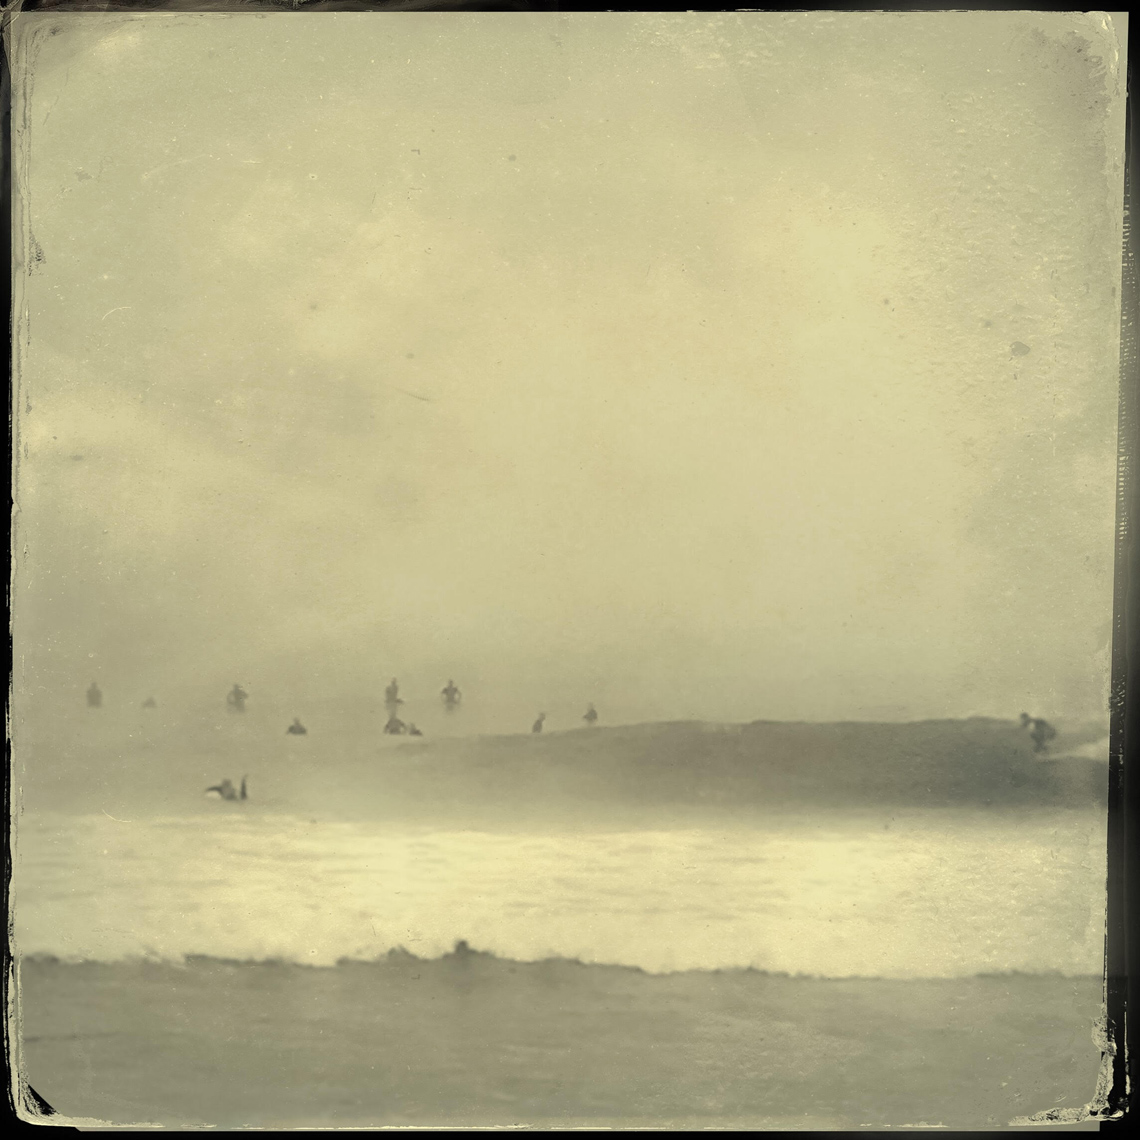 A Liars Ten: aka AM Oil Platforms (wet plate sketch)